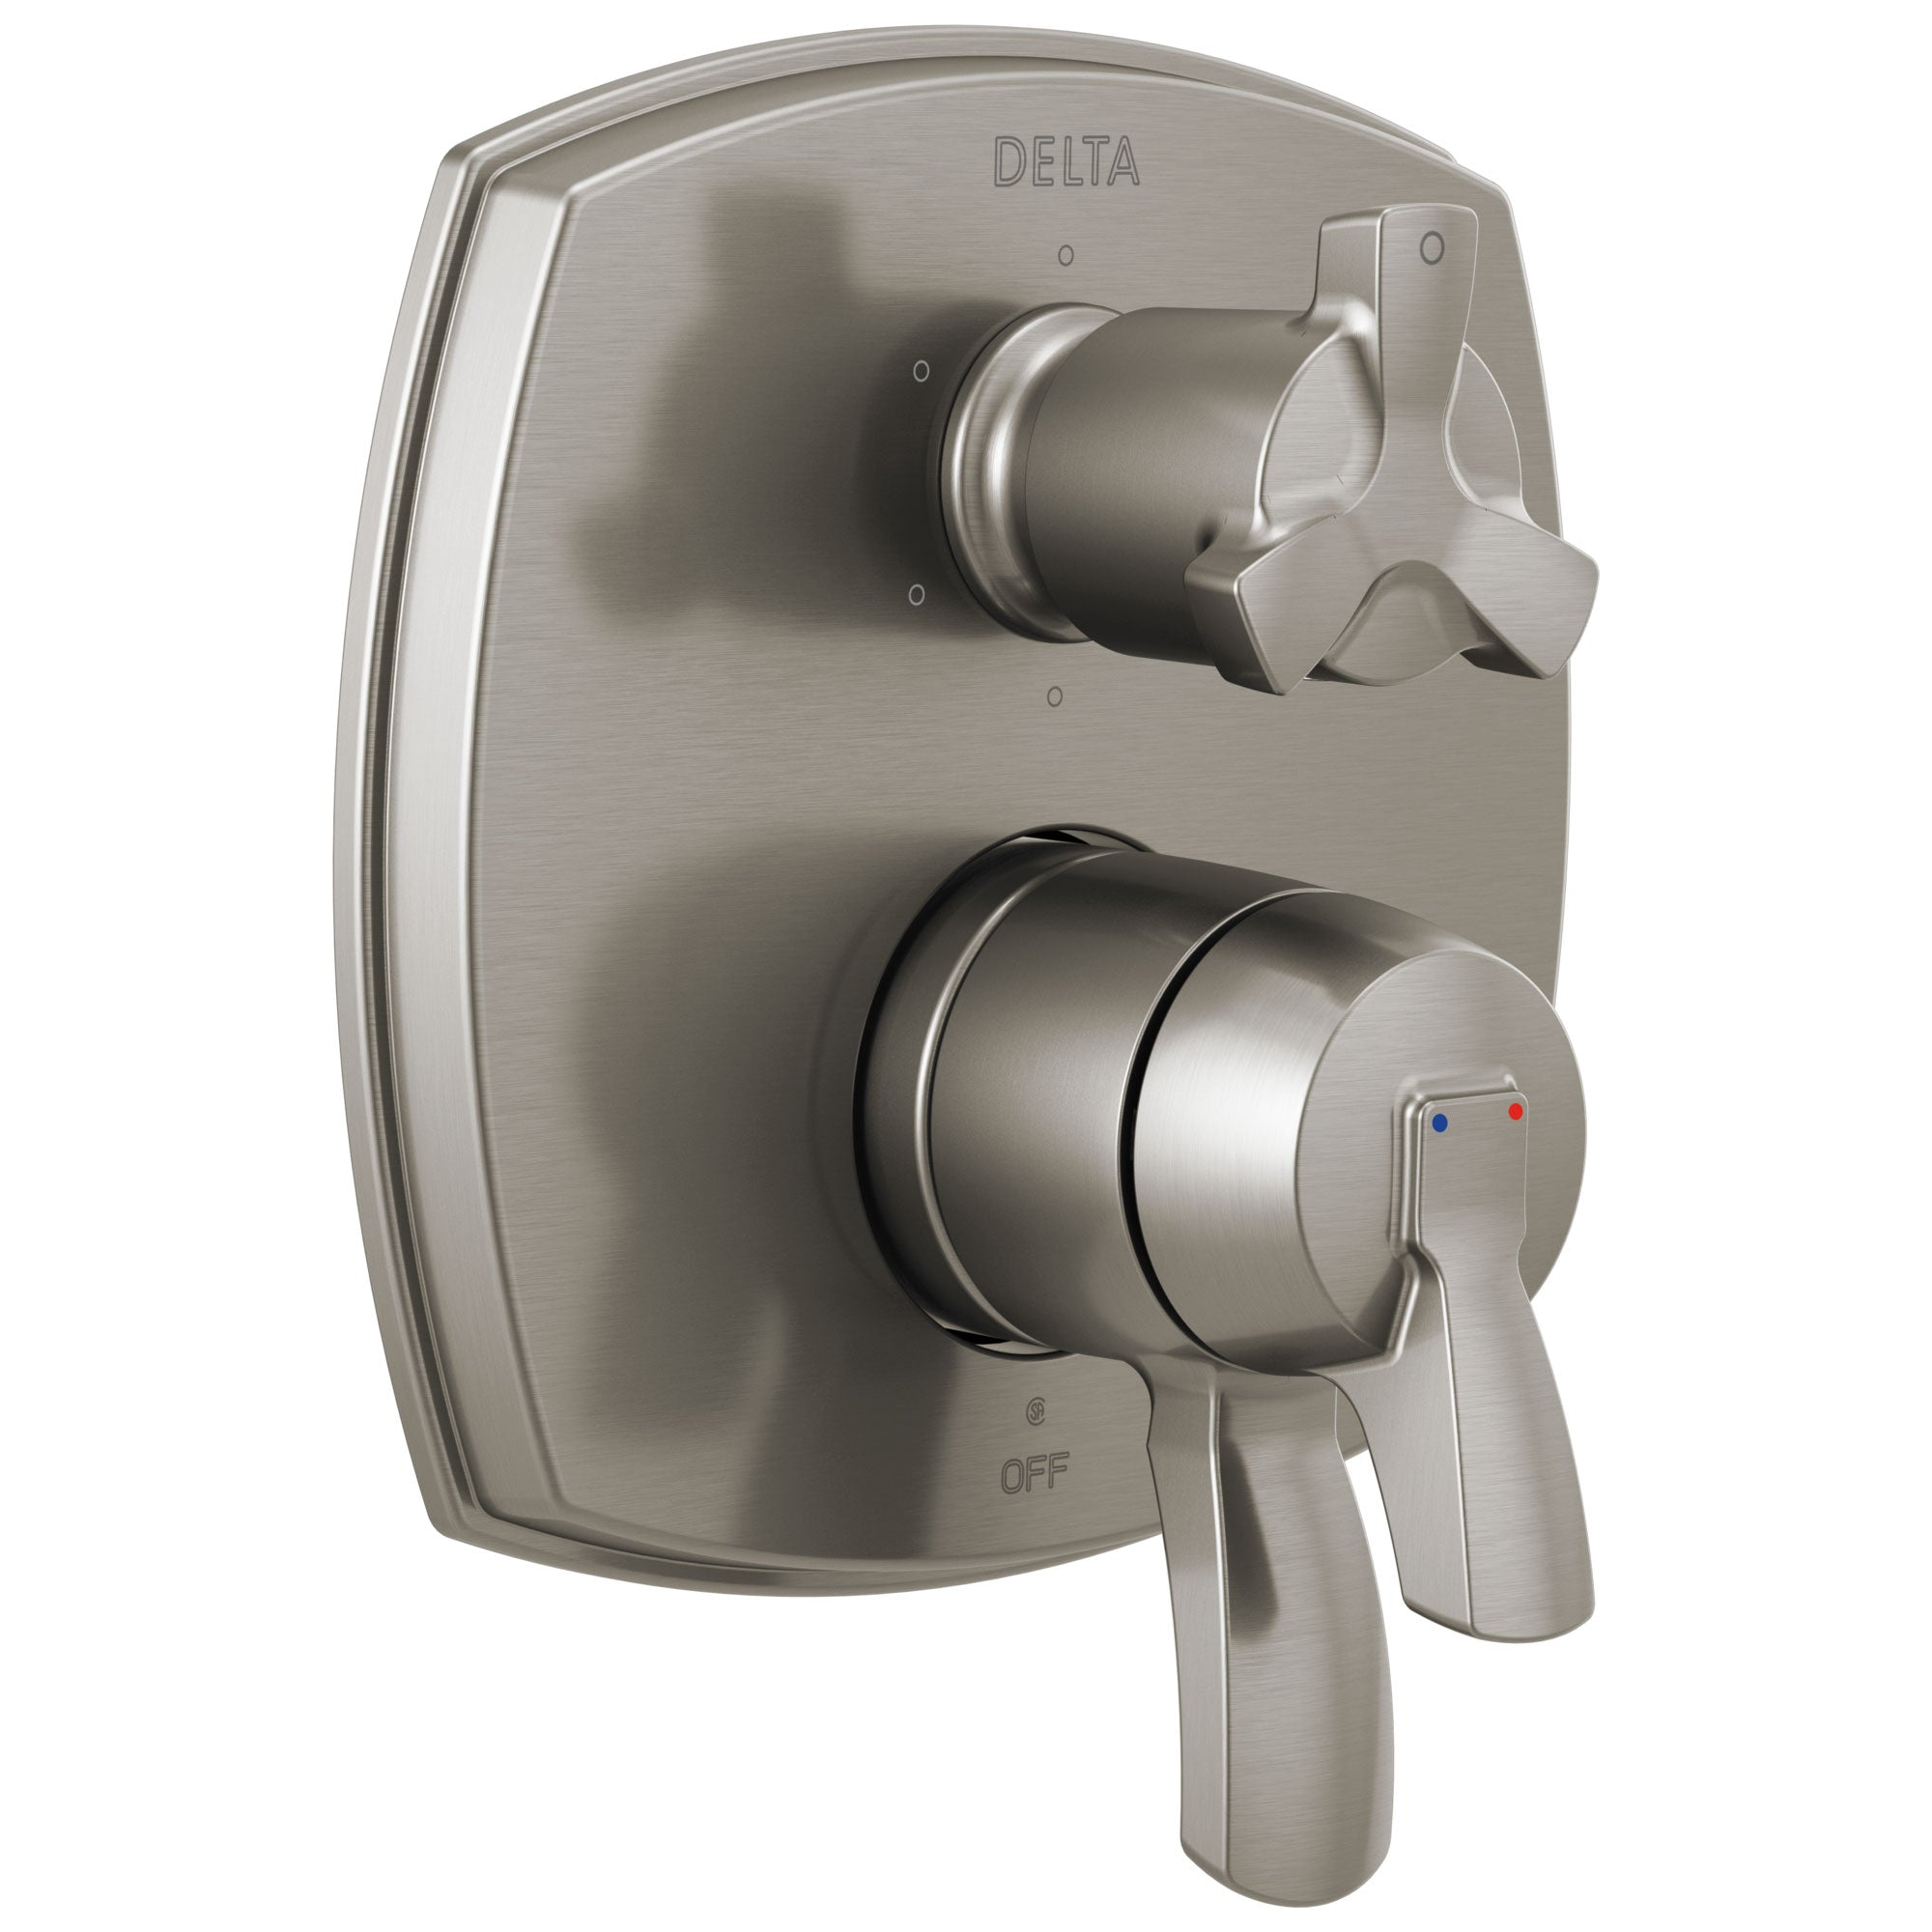 Delta Stryke Stainless Steel Finish 6 Function Cross Handle Integrated Diverter 17 Series Shower System Control Includes Valve and Handles D3703V